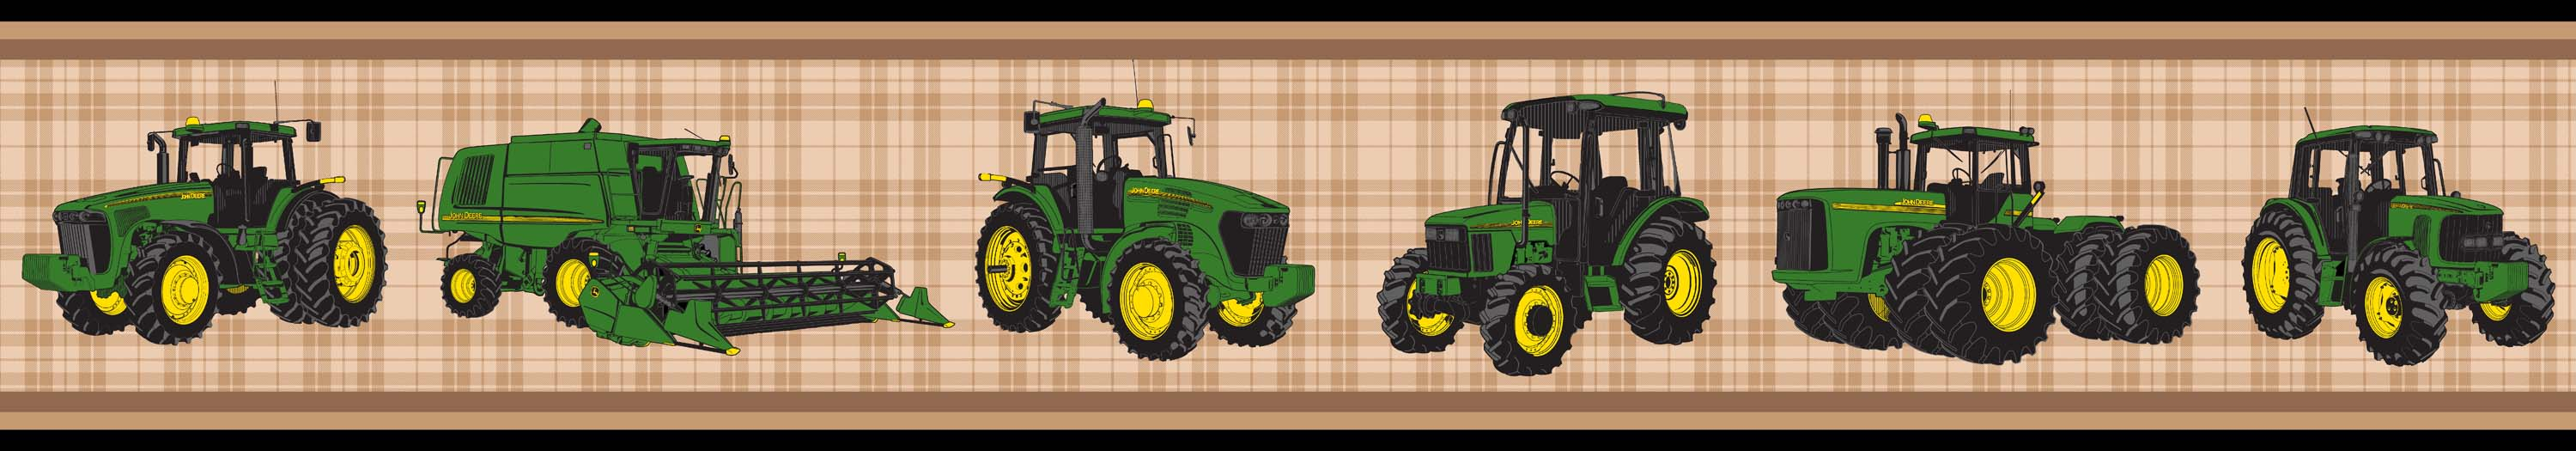 Product reviews for John Deere Tractors and Plaid Wall Border 3000x525